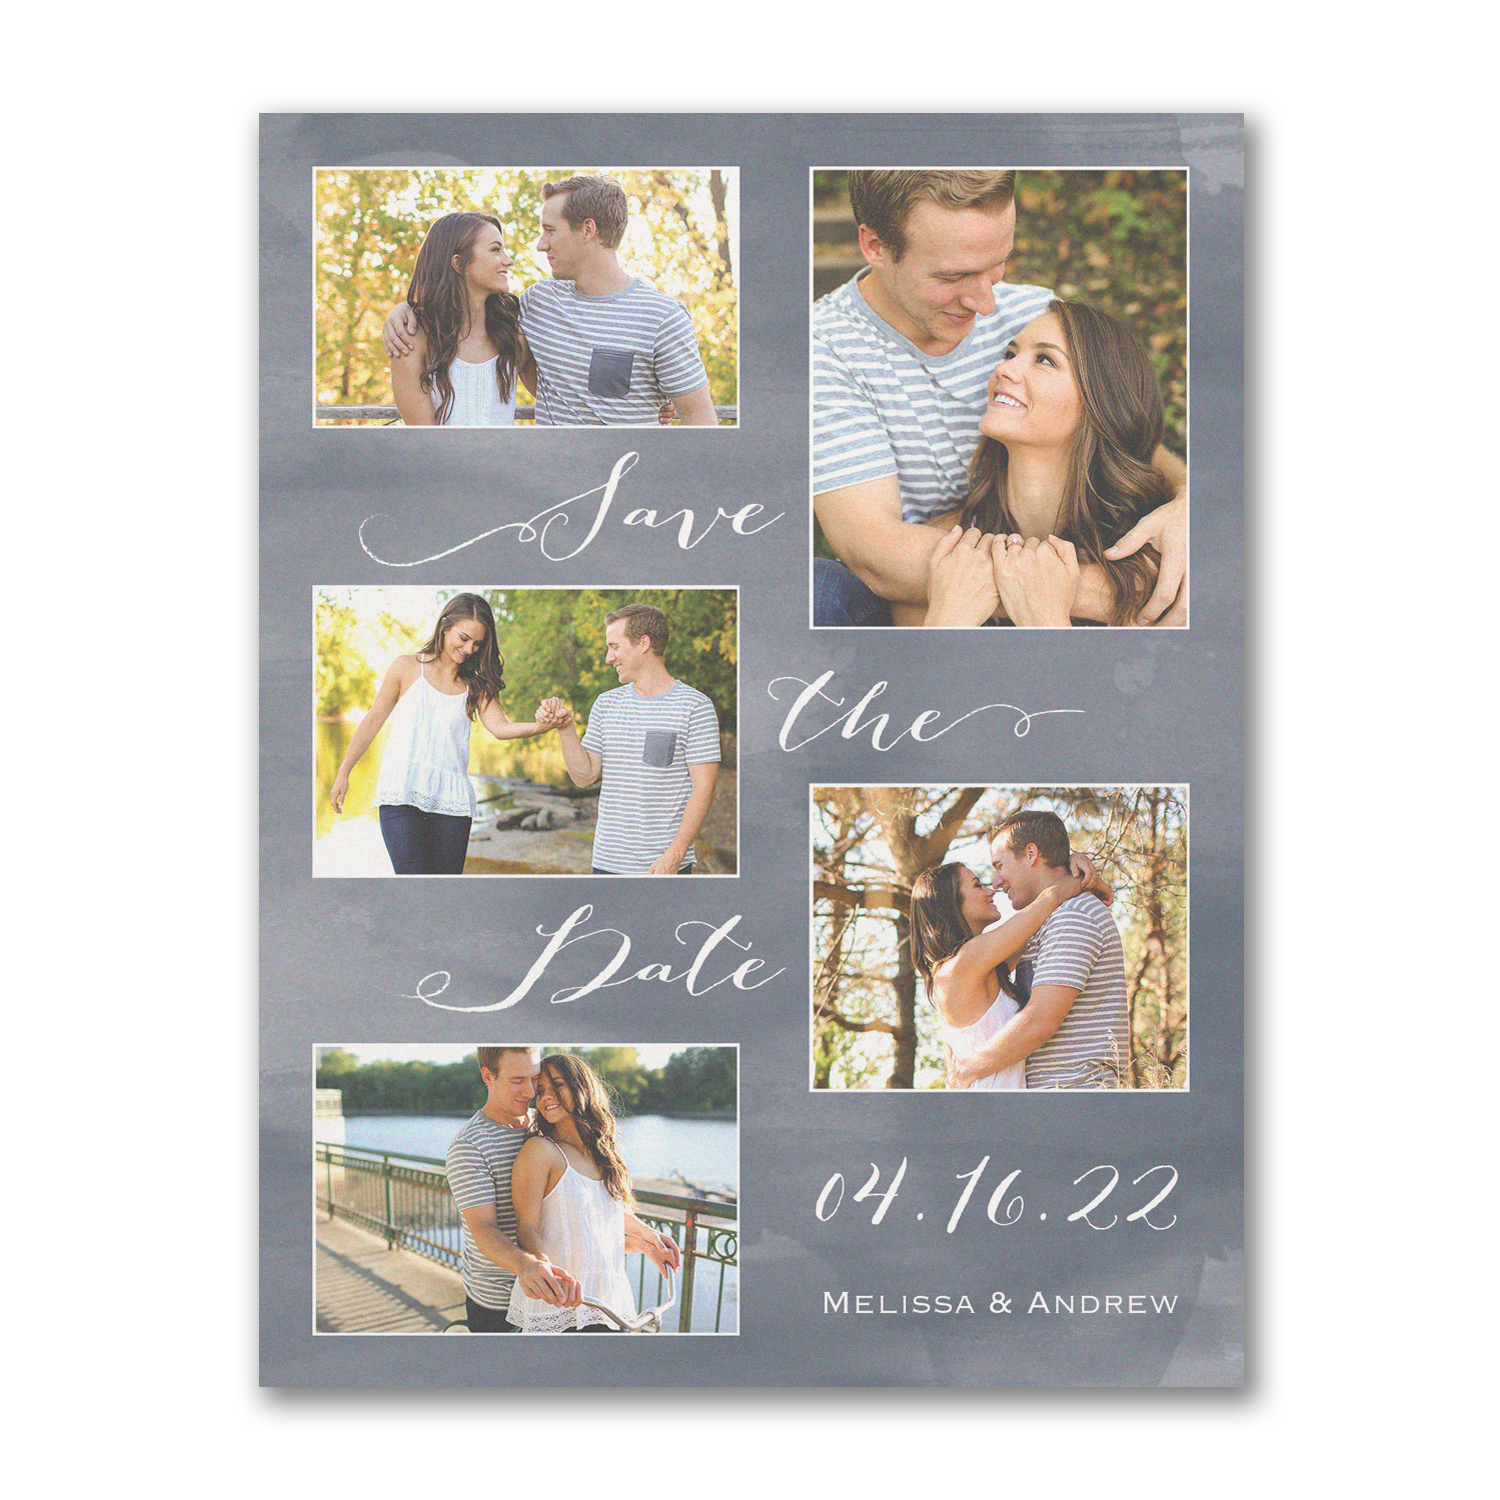 joyous romance photo collage save the date carlson craft